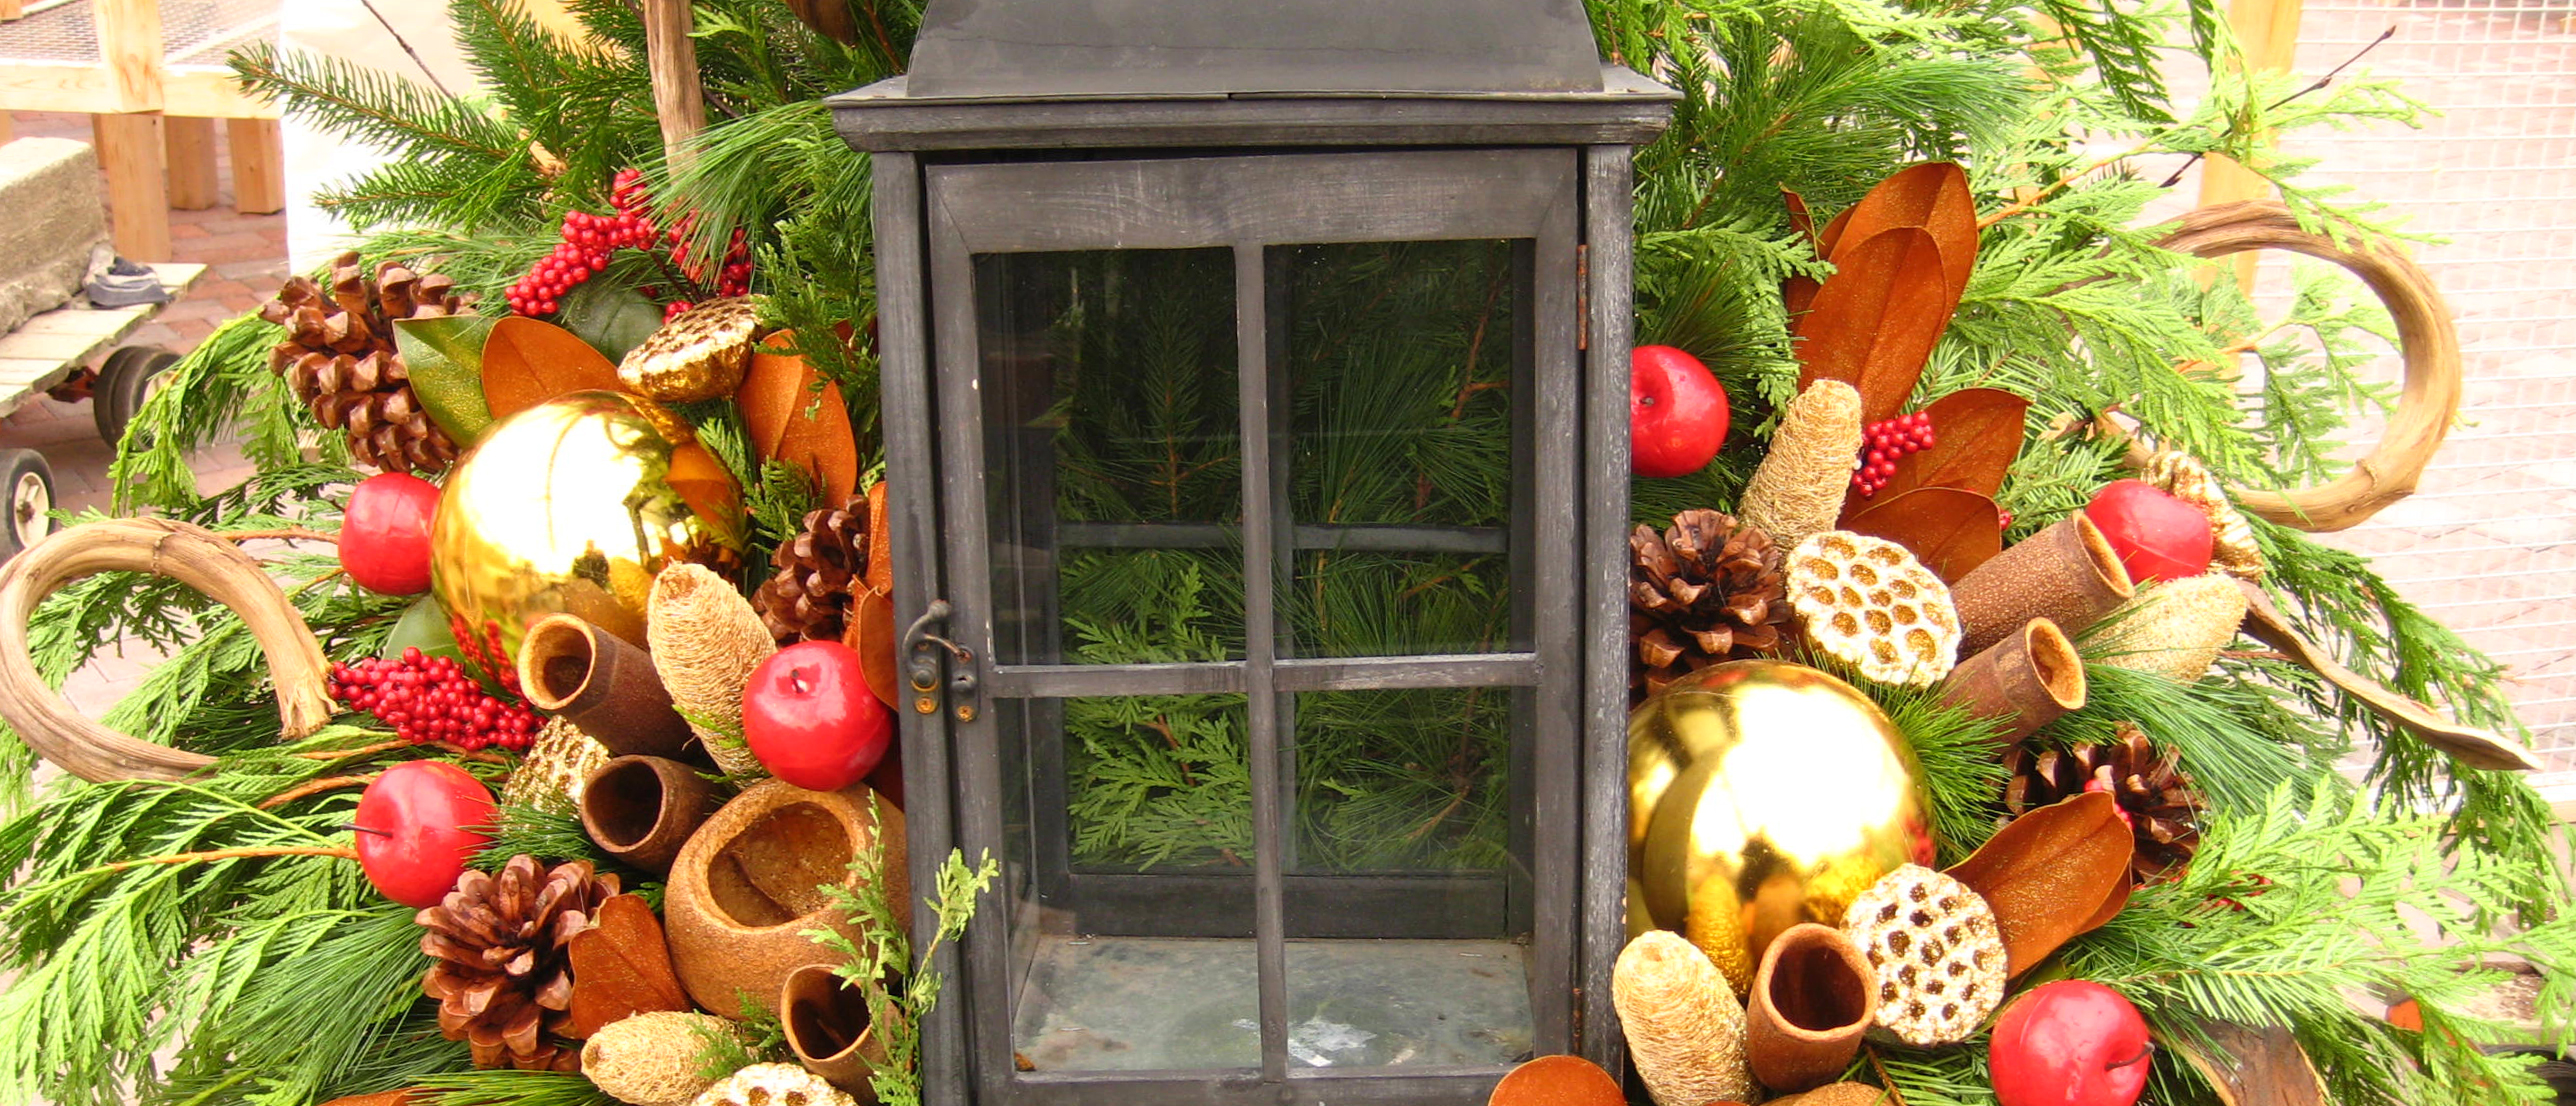 Find Seasonal Decorating options at Johnston's Greenhouse